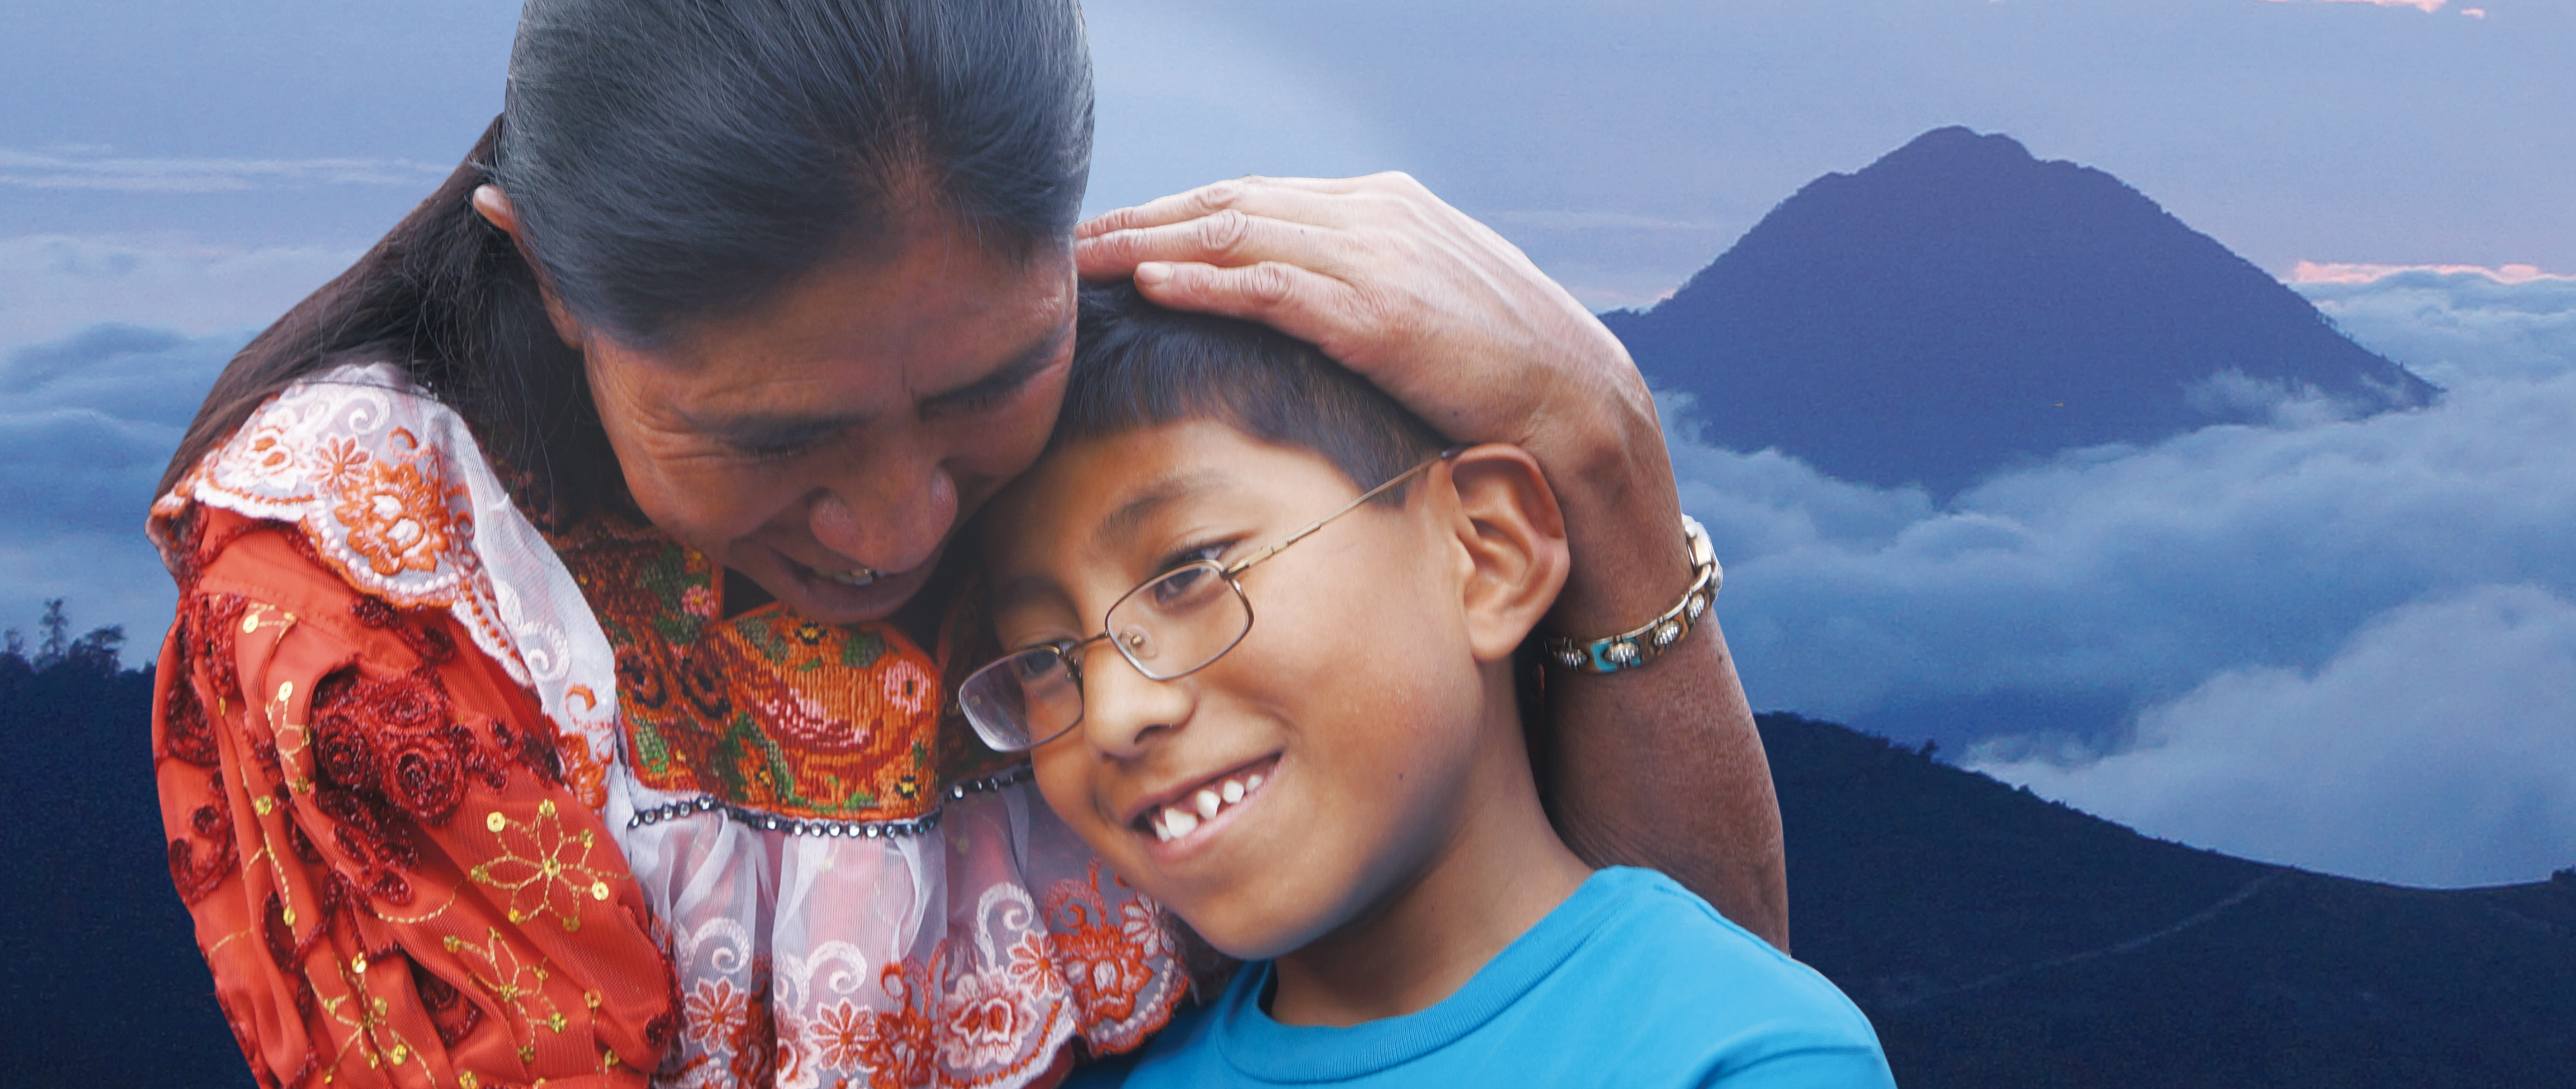 """<a href=""""https://www.bnaiisrael.net/community/social-action""""                                     target="""""""">                                                                 <span class=""""slider_title"""">                                     ABRAZOS (Embraces)                                </span>                                                                 </a>                                                                                                                                                                                       <span class=""""slider_description"""">Follow their emotional journey to Guatemala to meet their grandparents for the first time. Screening online May 9-16, 2021.</span>                                                                                     <a href=""""https://www.bnaiisrael.net/community/social-action"""" class=""""slider_link""""                             target="""""""">                             Read More                            </a>"""